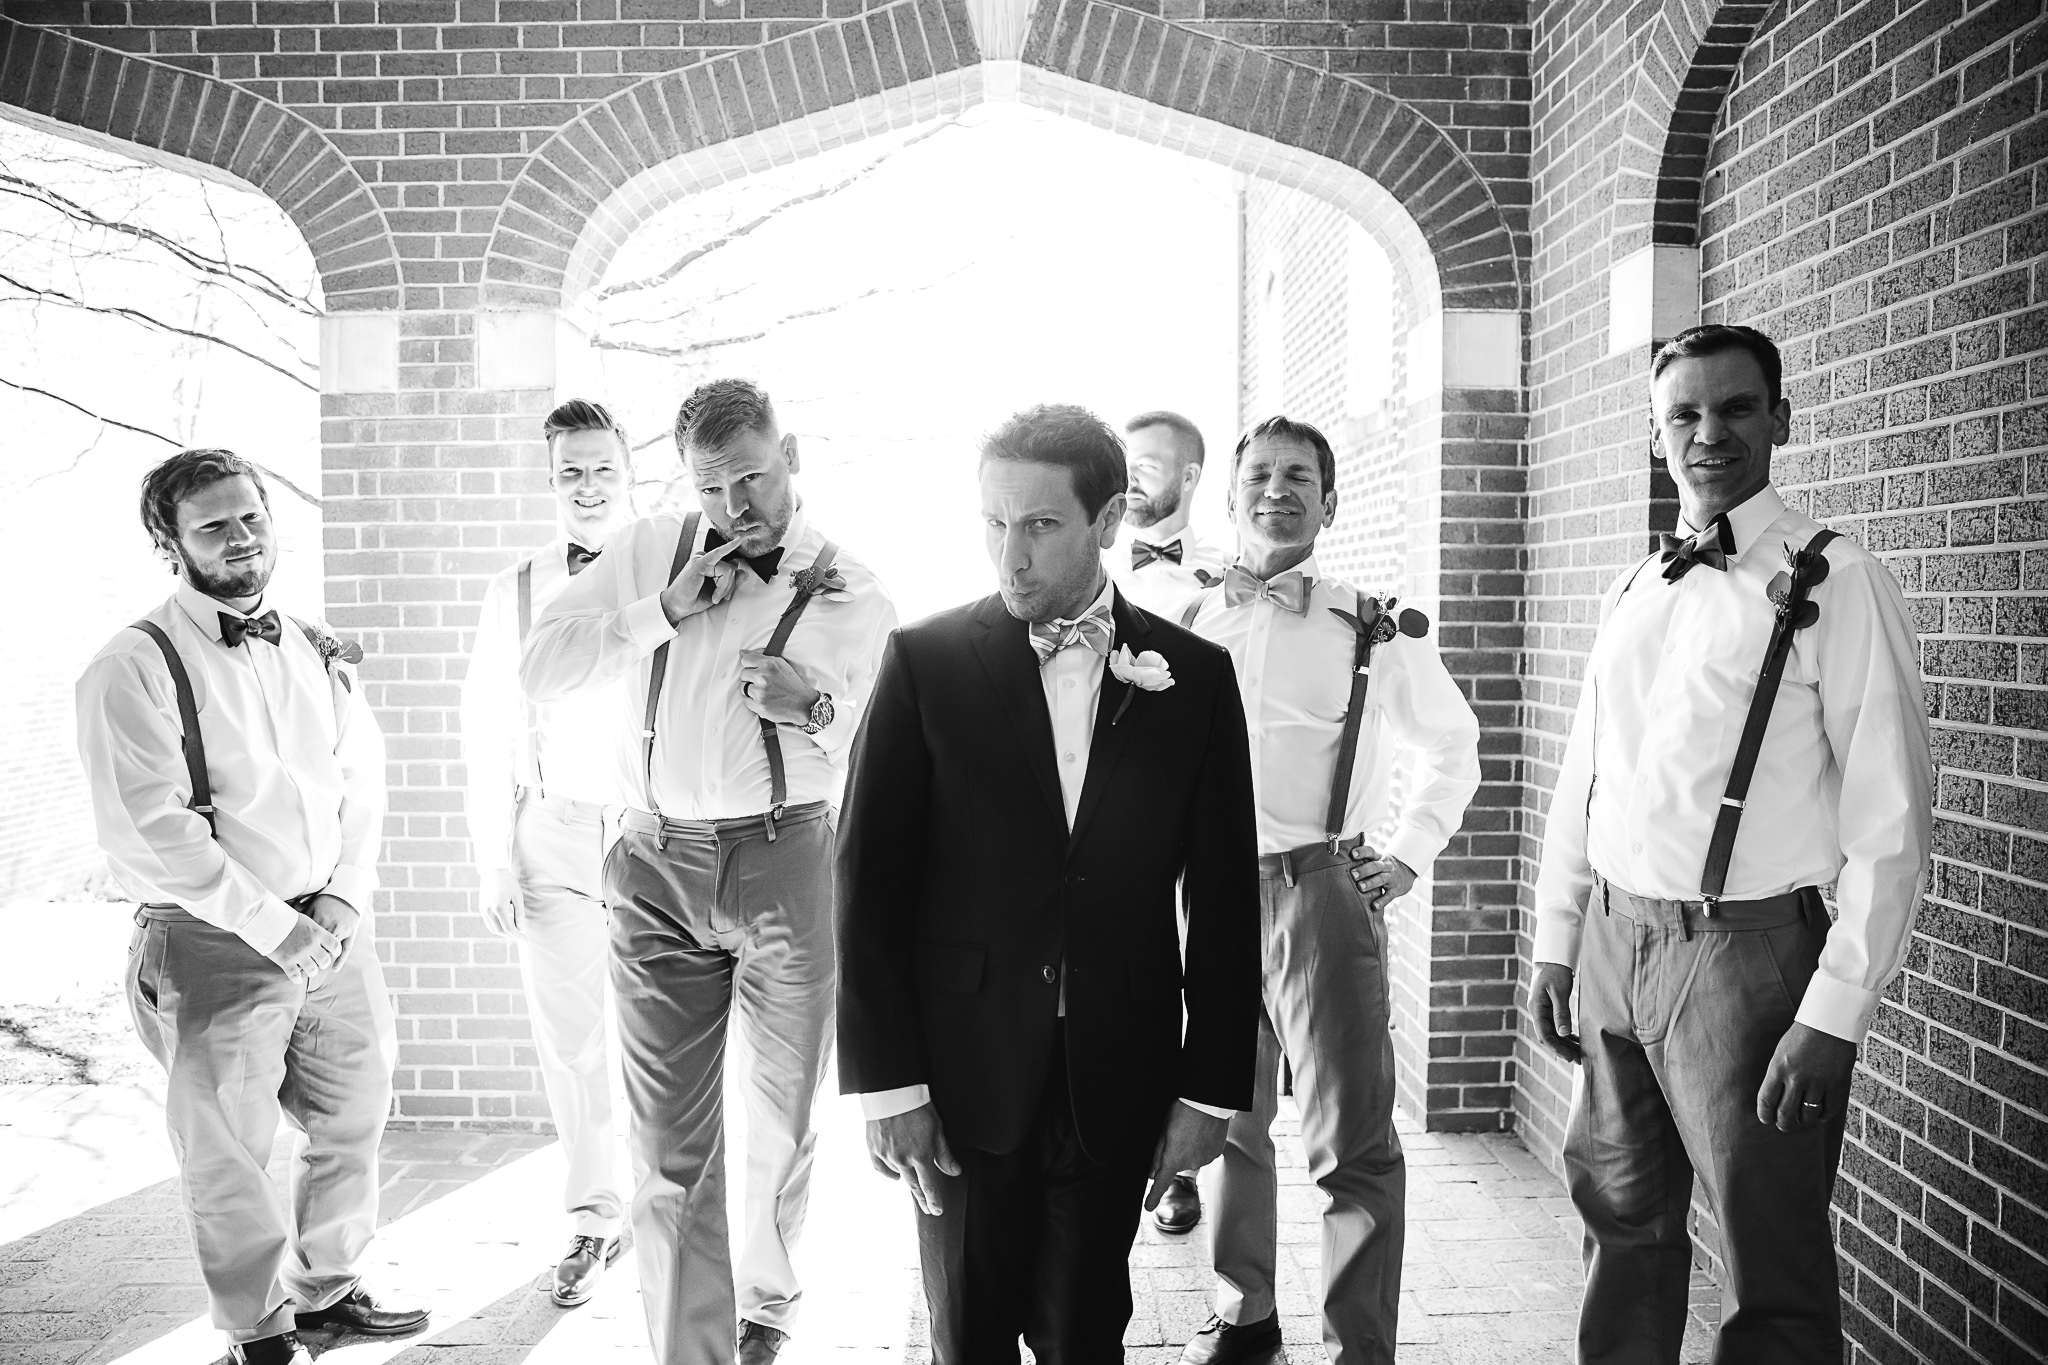 chattanooga-wedding-photographers-thewarmtharoundyou-waterhouse-pavilion-patten-chapel-wedding-sam-dusty (20 of 99).jpg